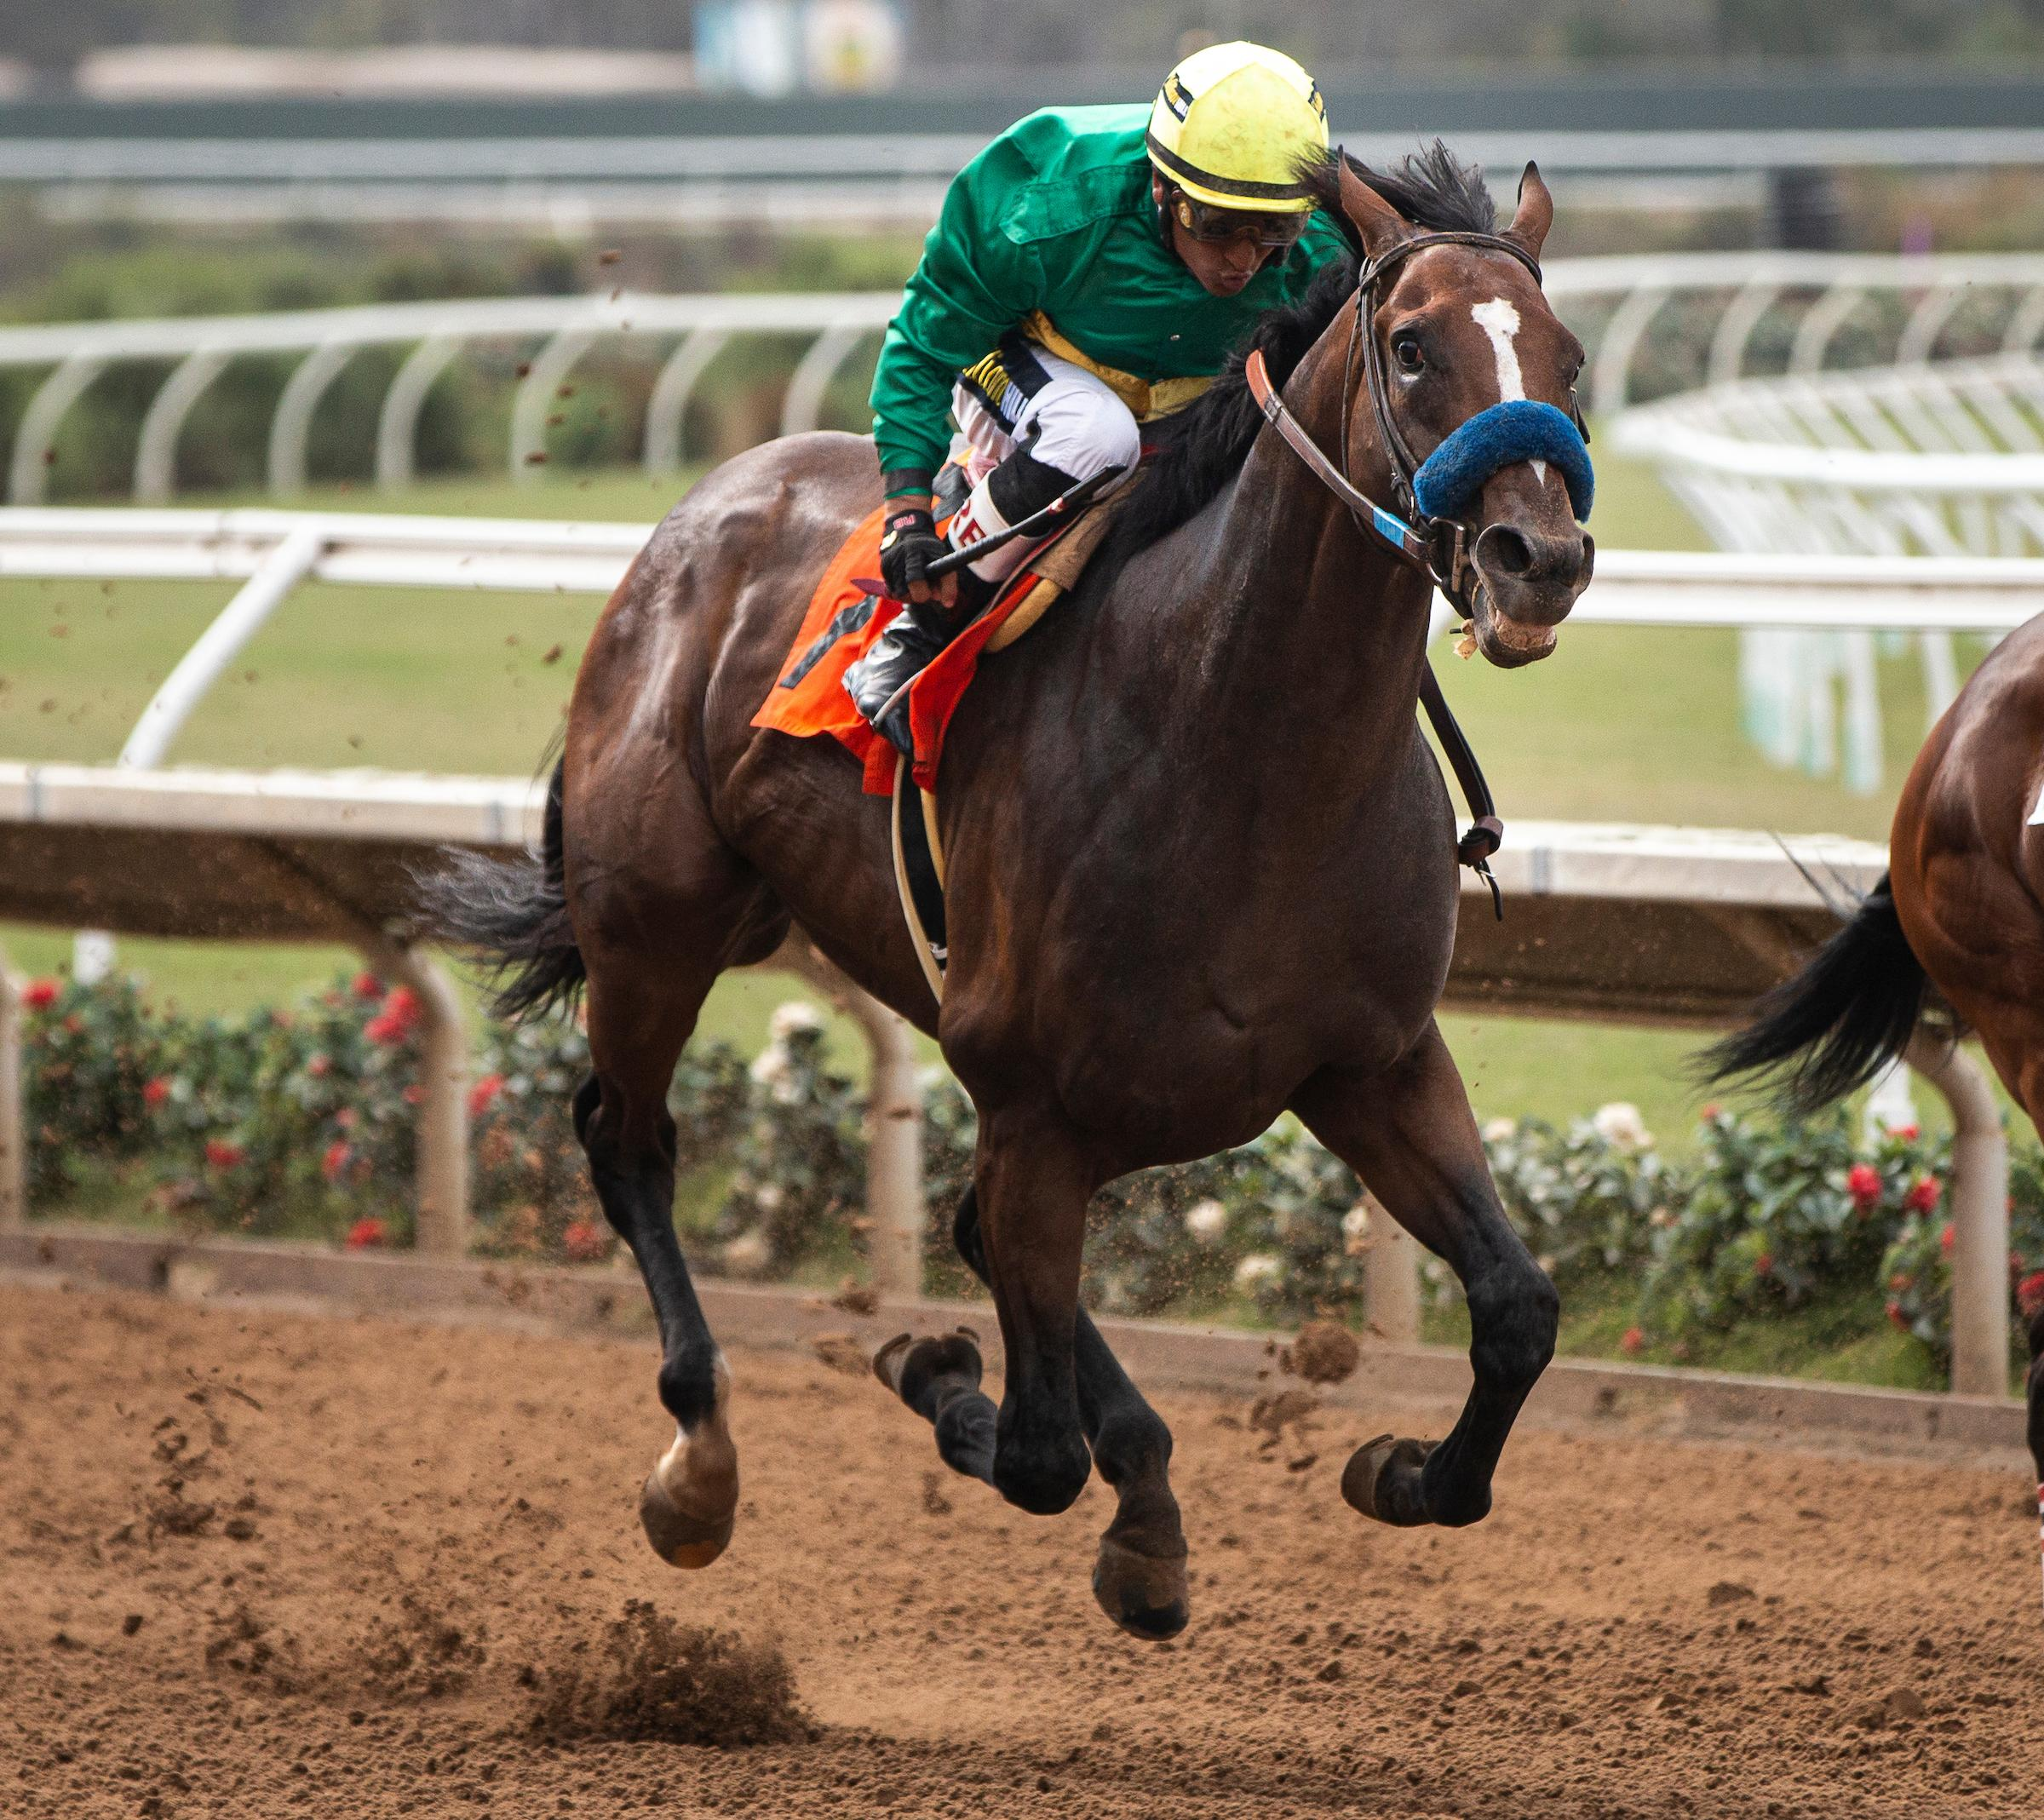 2019 Tvg Pacific Classic Cheat Sheet America S Best Racing